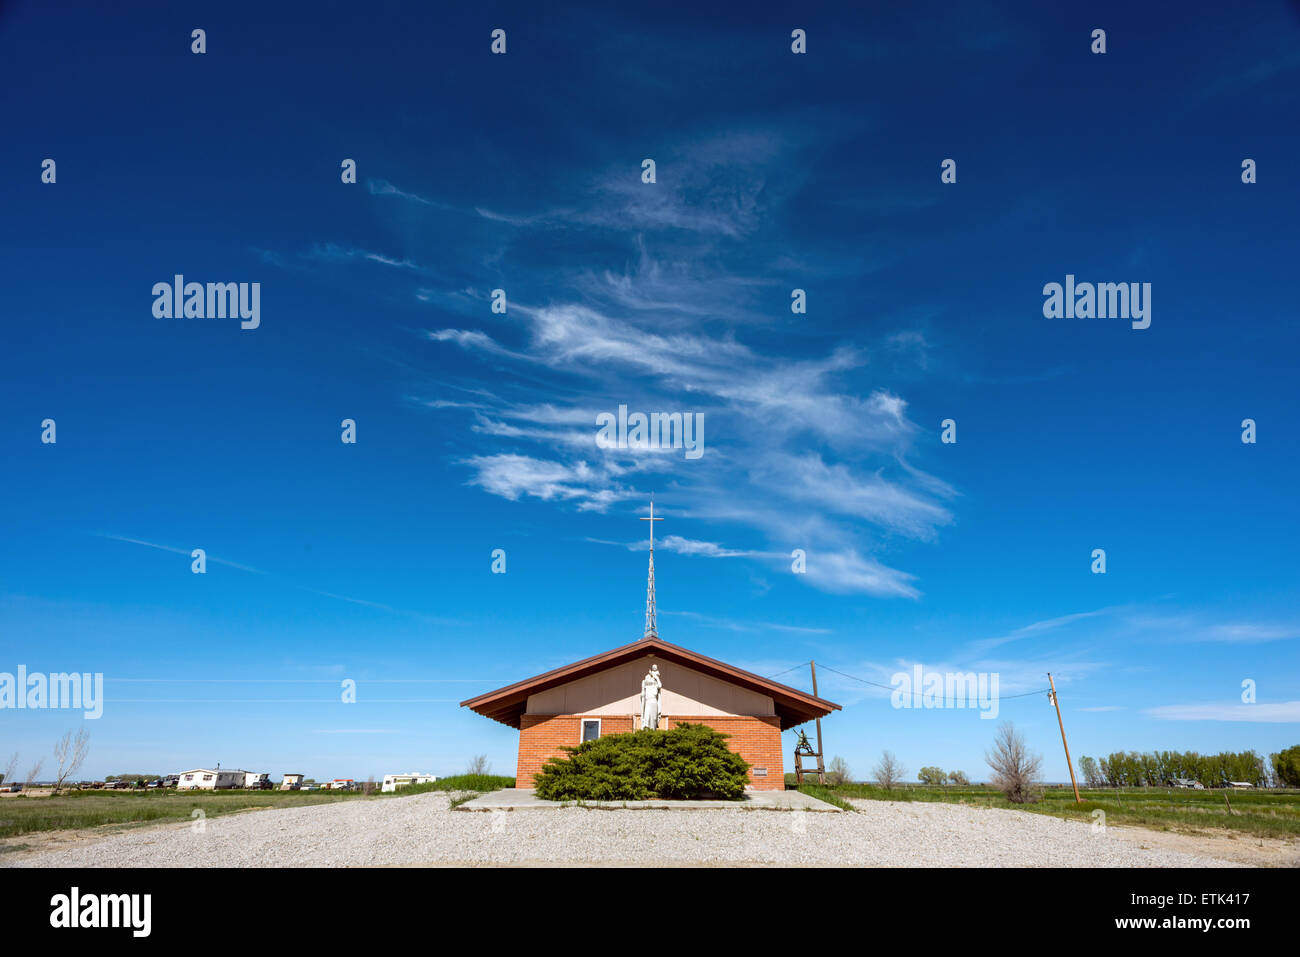 Church building in rural Wyoming USA - Stock Image